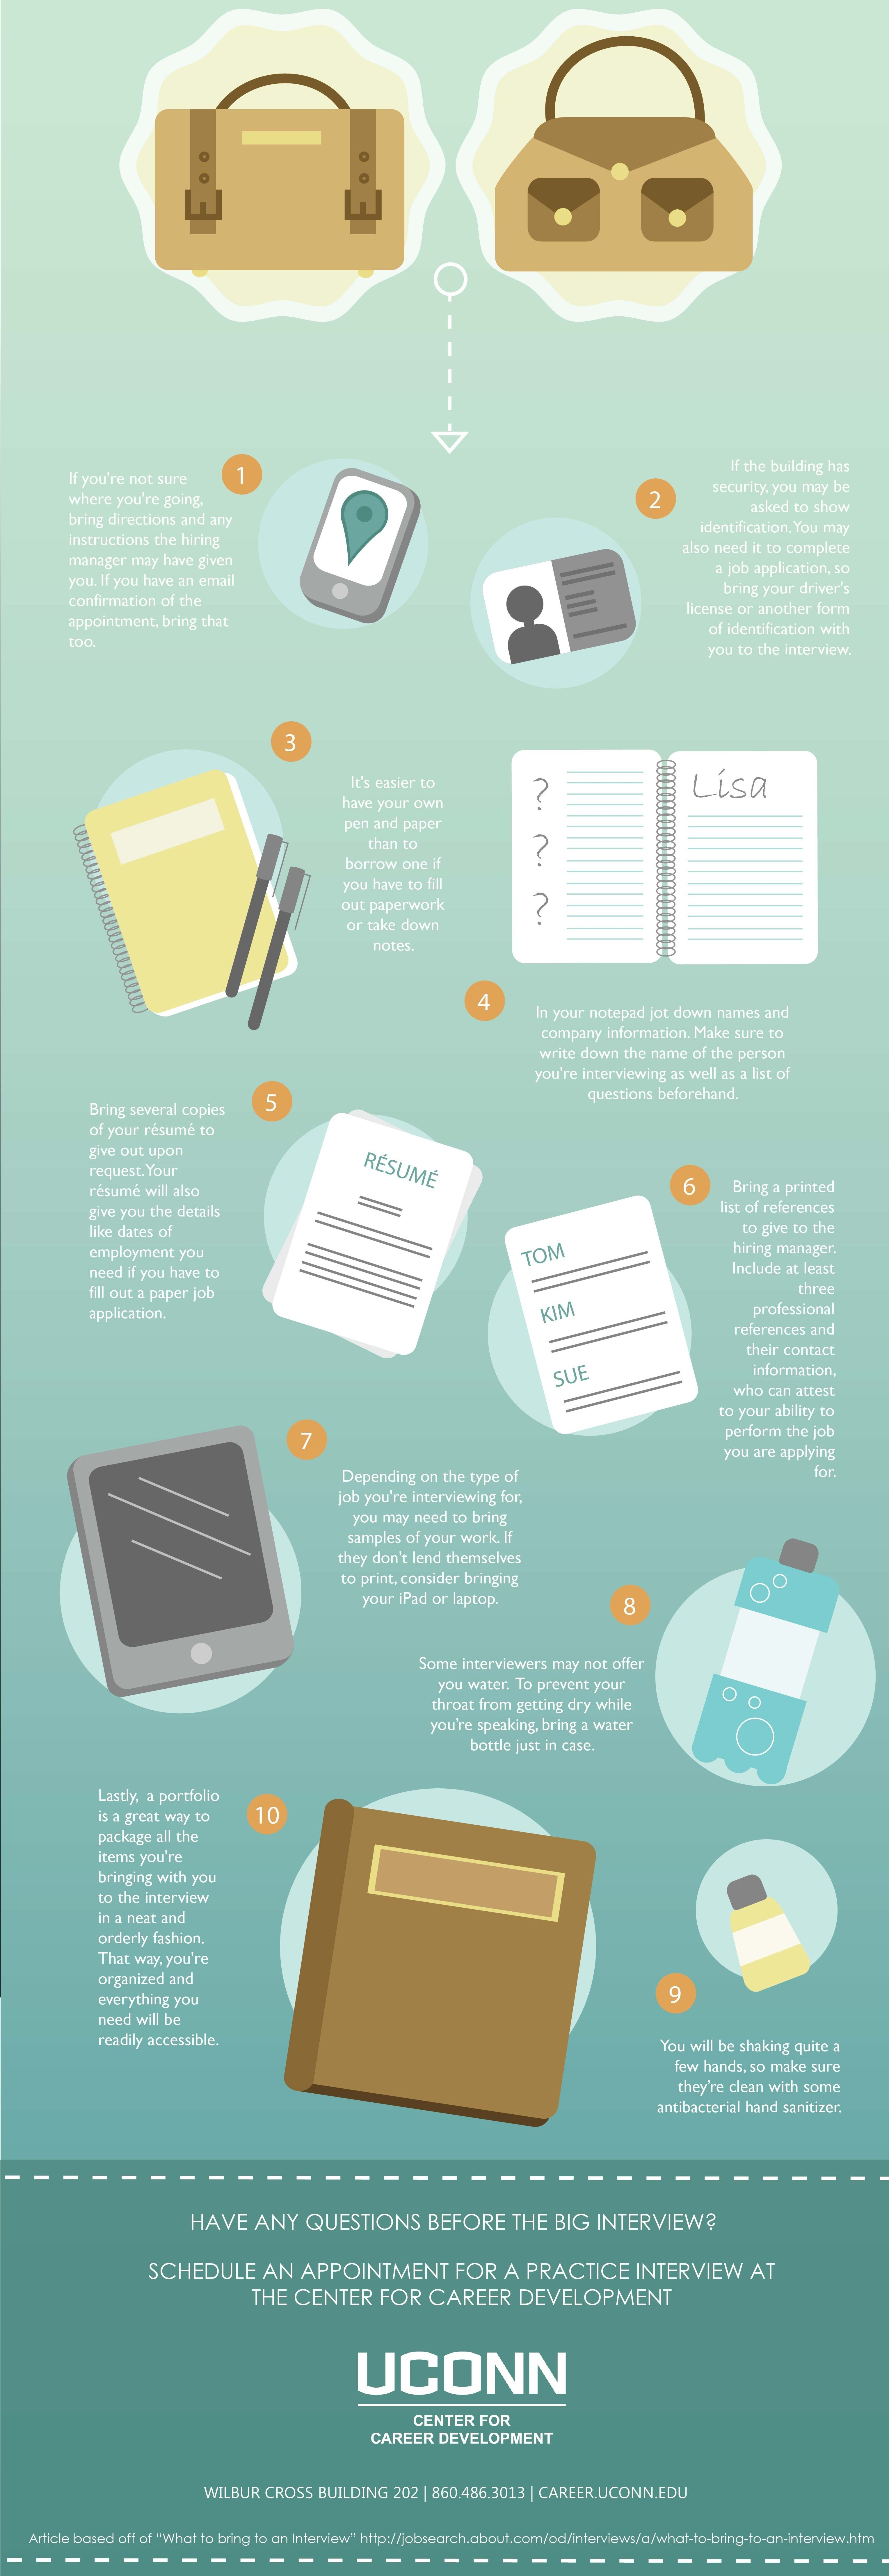 10 items to bring to an interview_MP-01